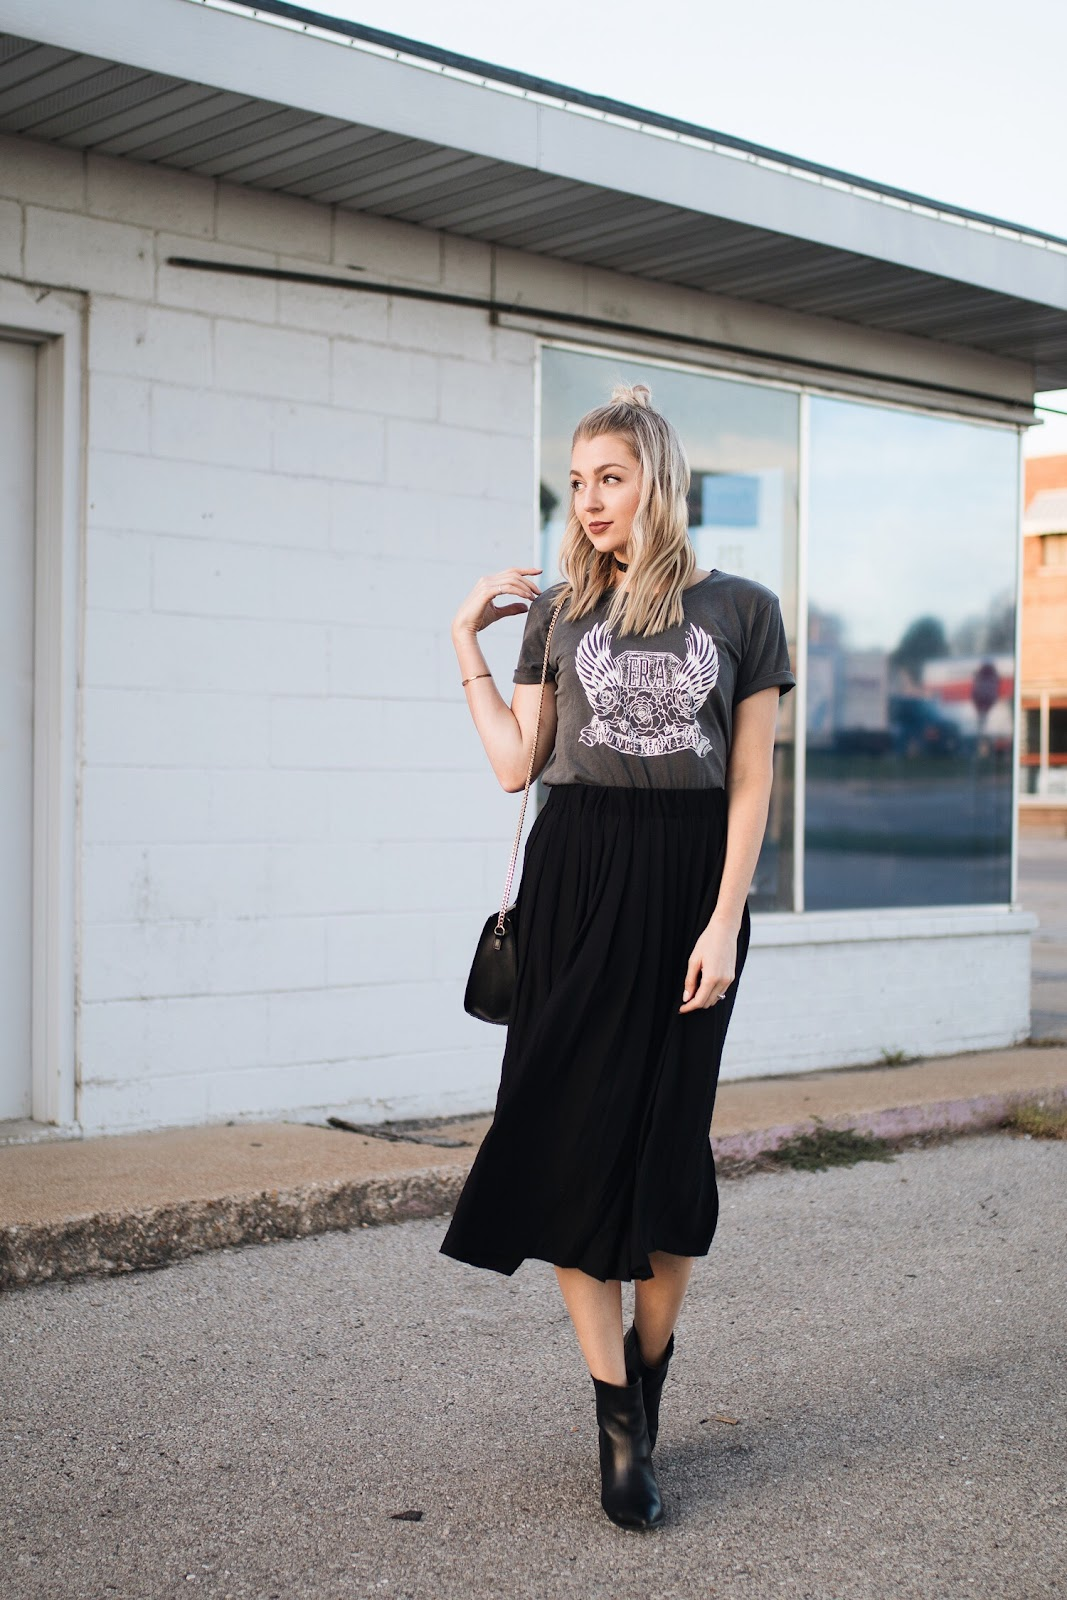 Rocker vibes // graphic tee with a pleated midi skirt